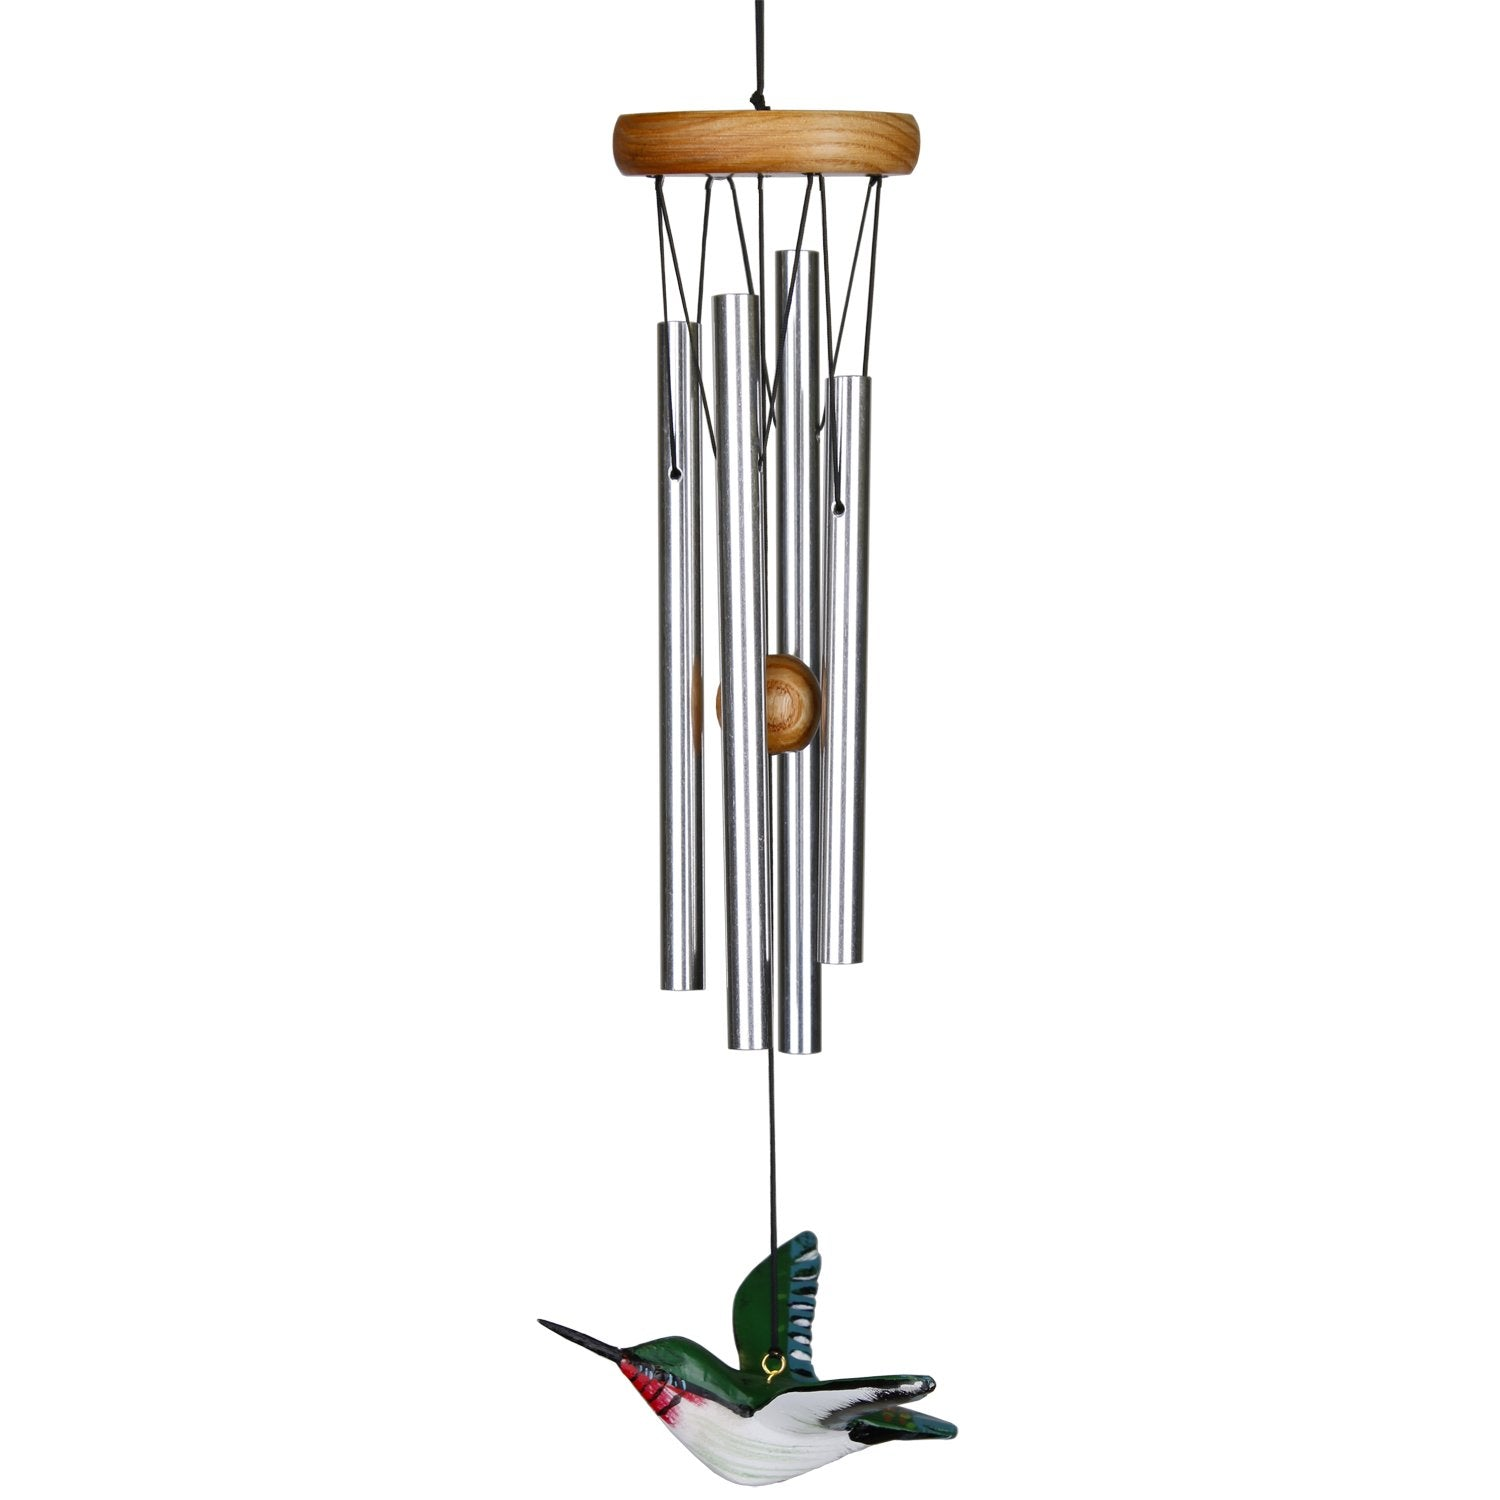 Hummer Chime alternate product image